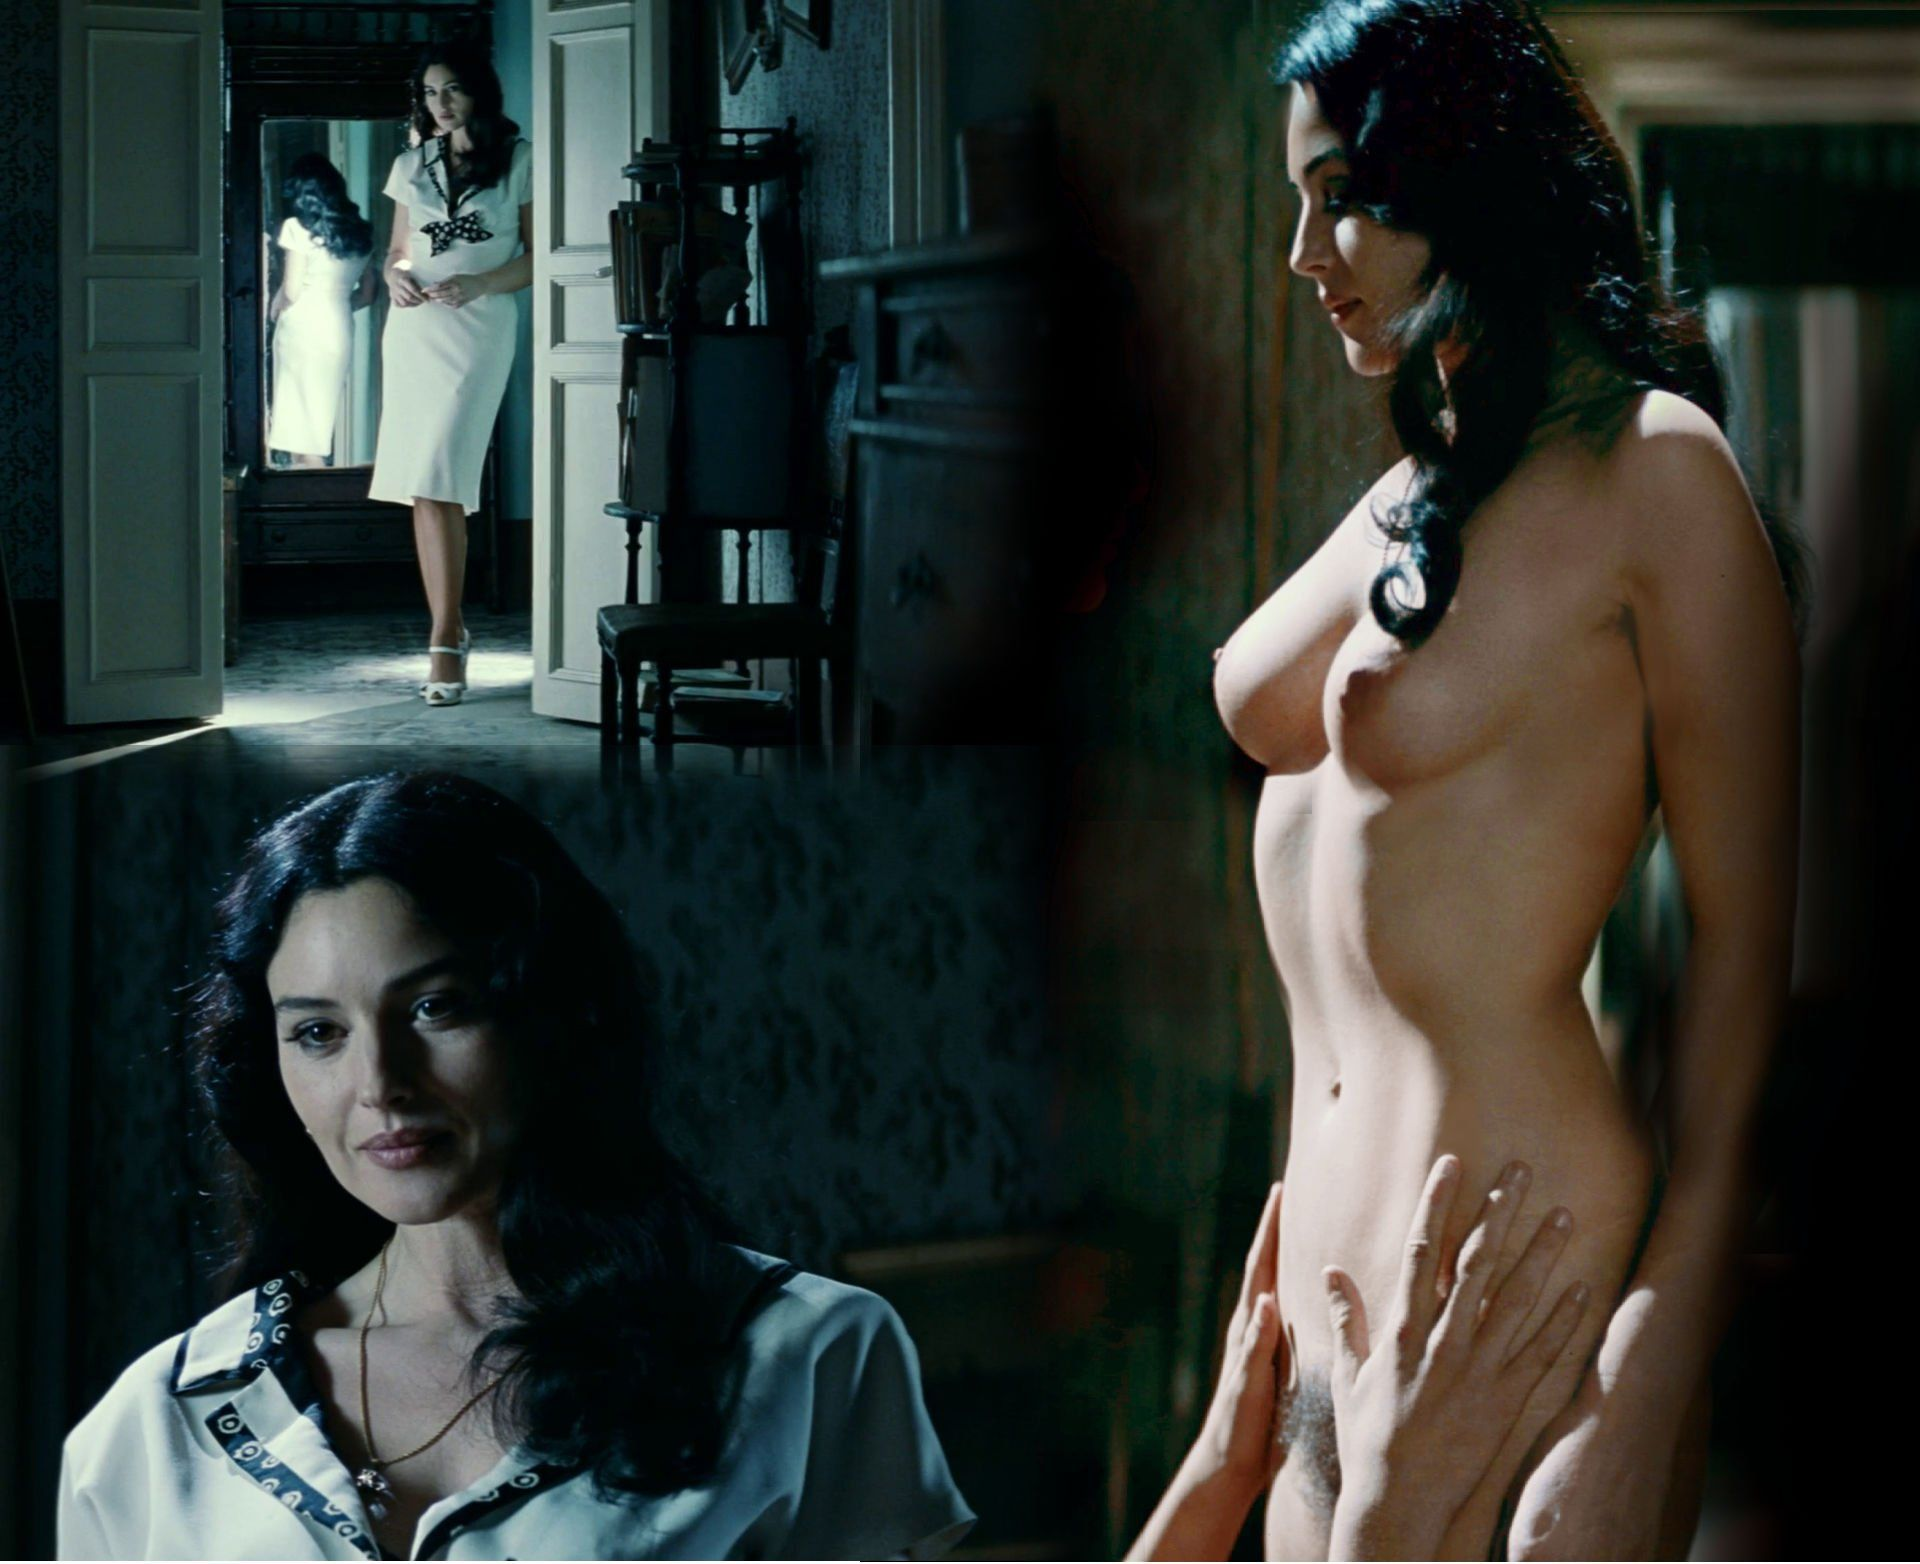 monica-bellucci-hot-boobs-erotic-bodybuilding-women-pictures